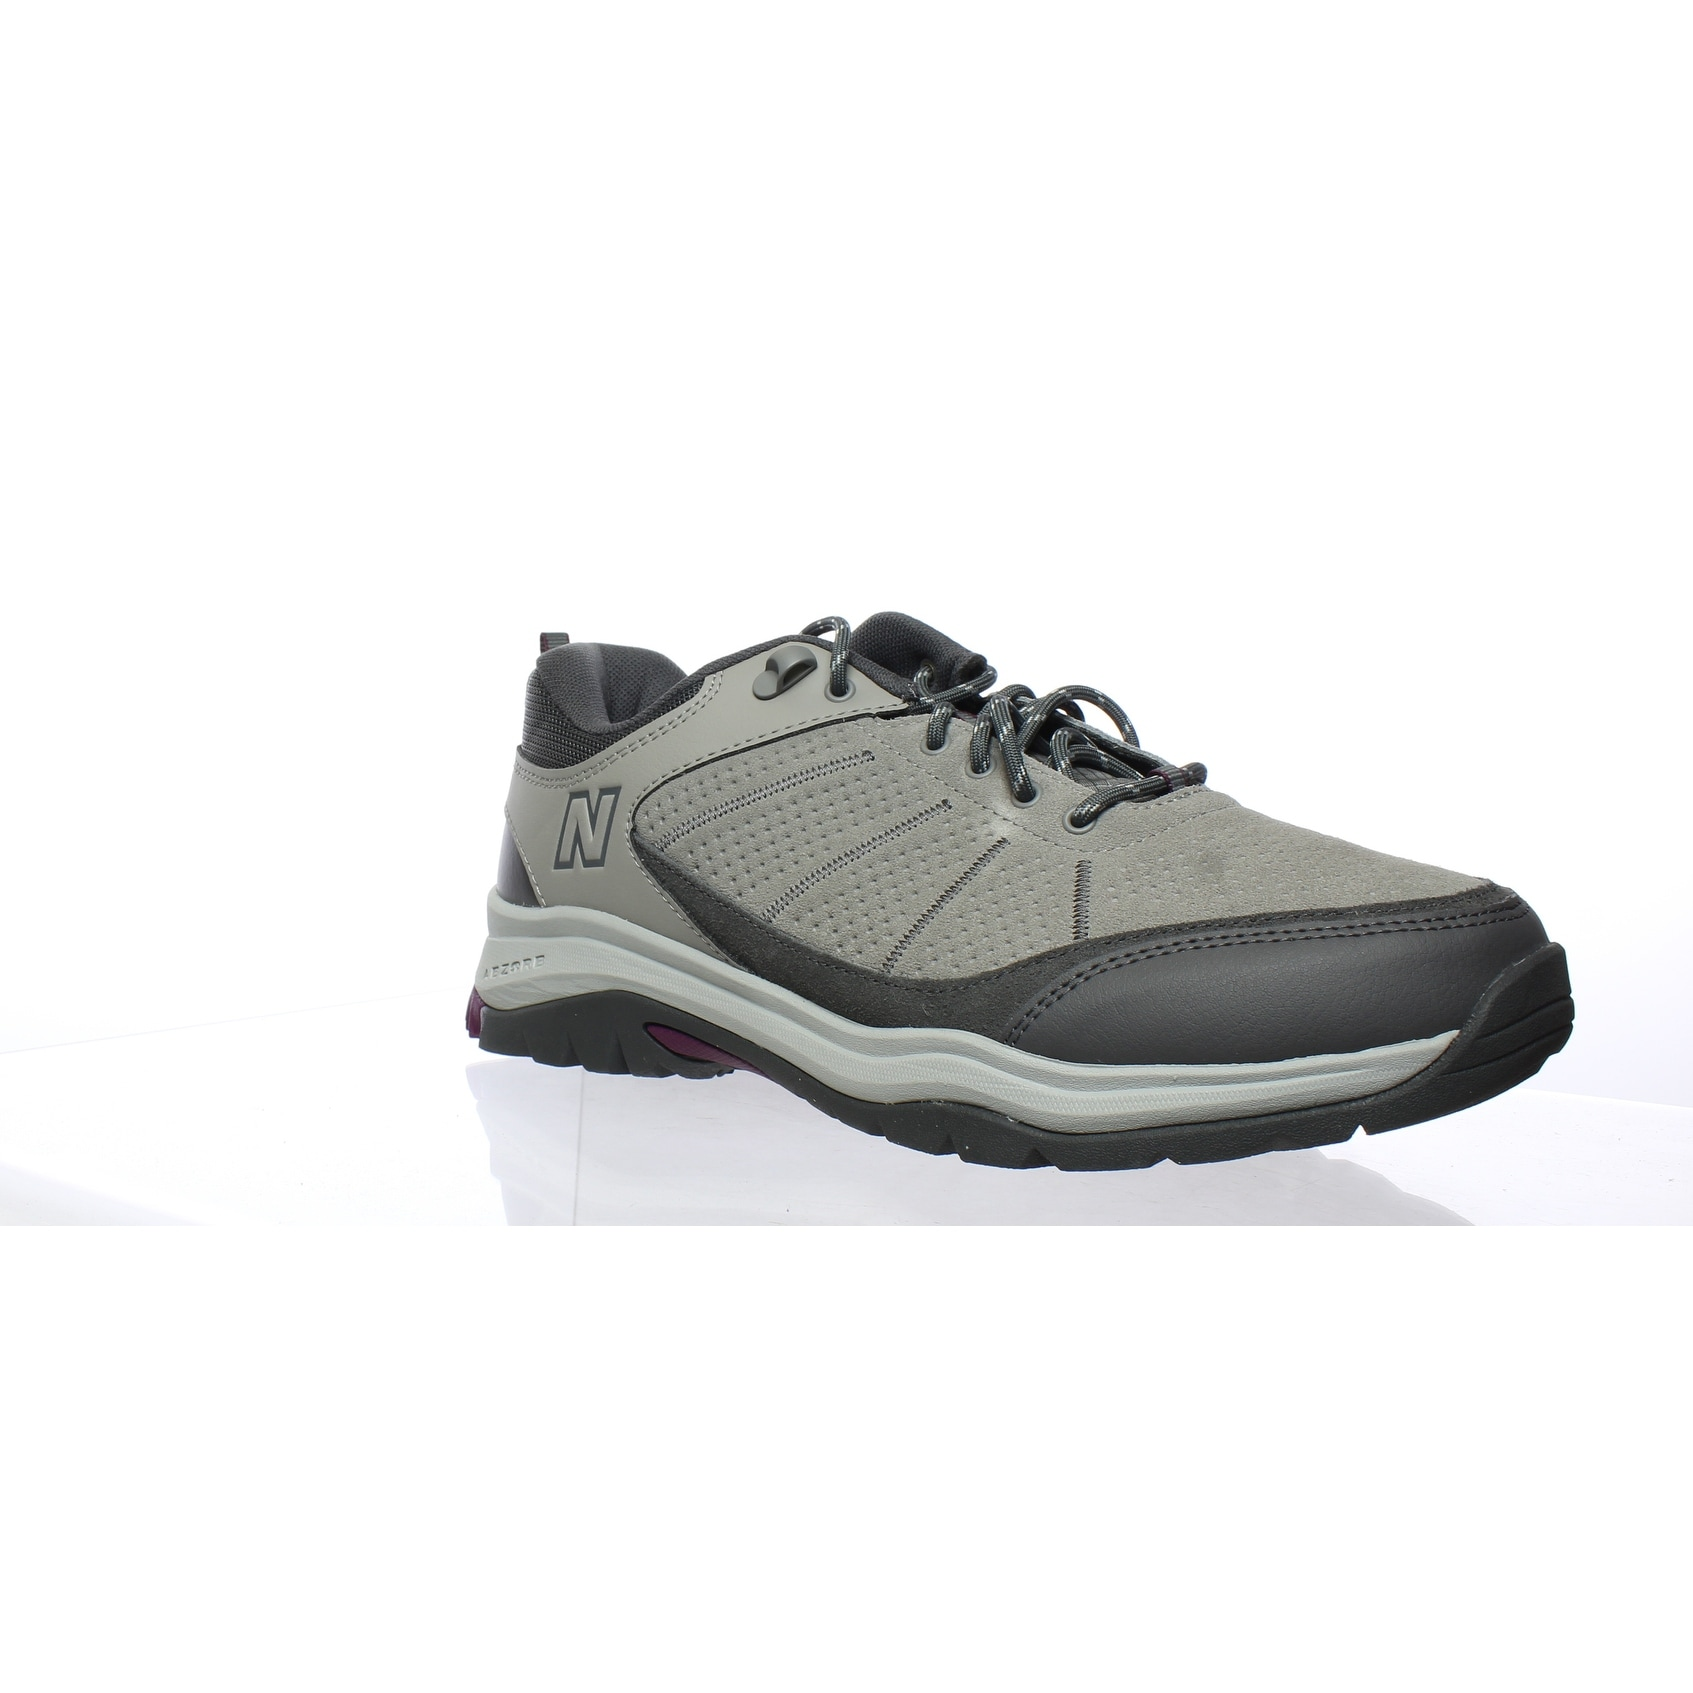 4d861d9f1dfff Extra Wide New Balance Women's Shoes | Find Great Shoes Deals Shopping at  Overstock